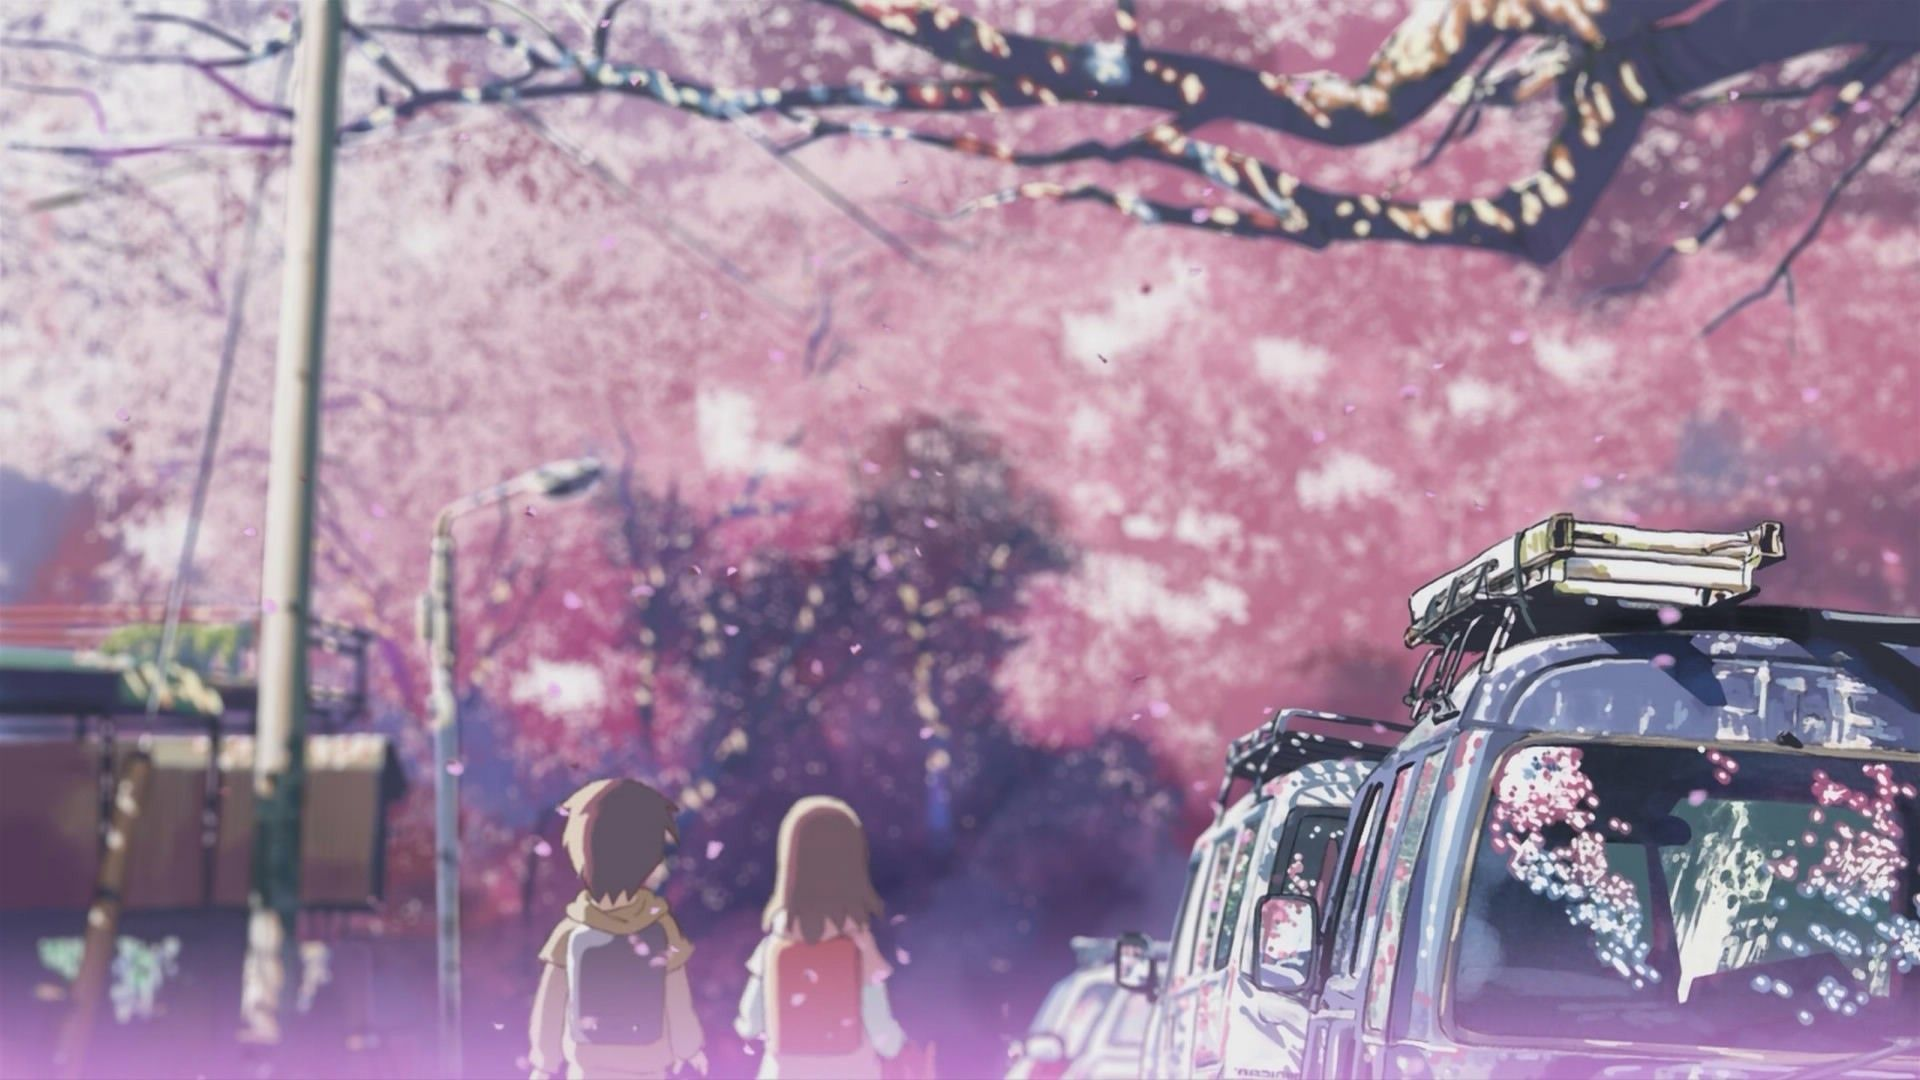 Wallpaper Blink 5 Centimeters Per Second Wallpaper HD 4